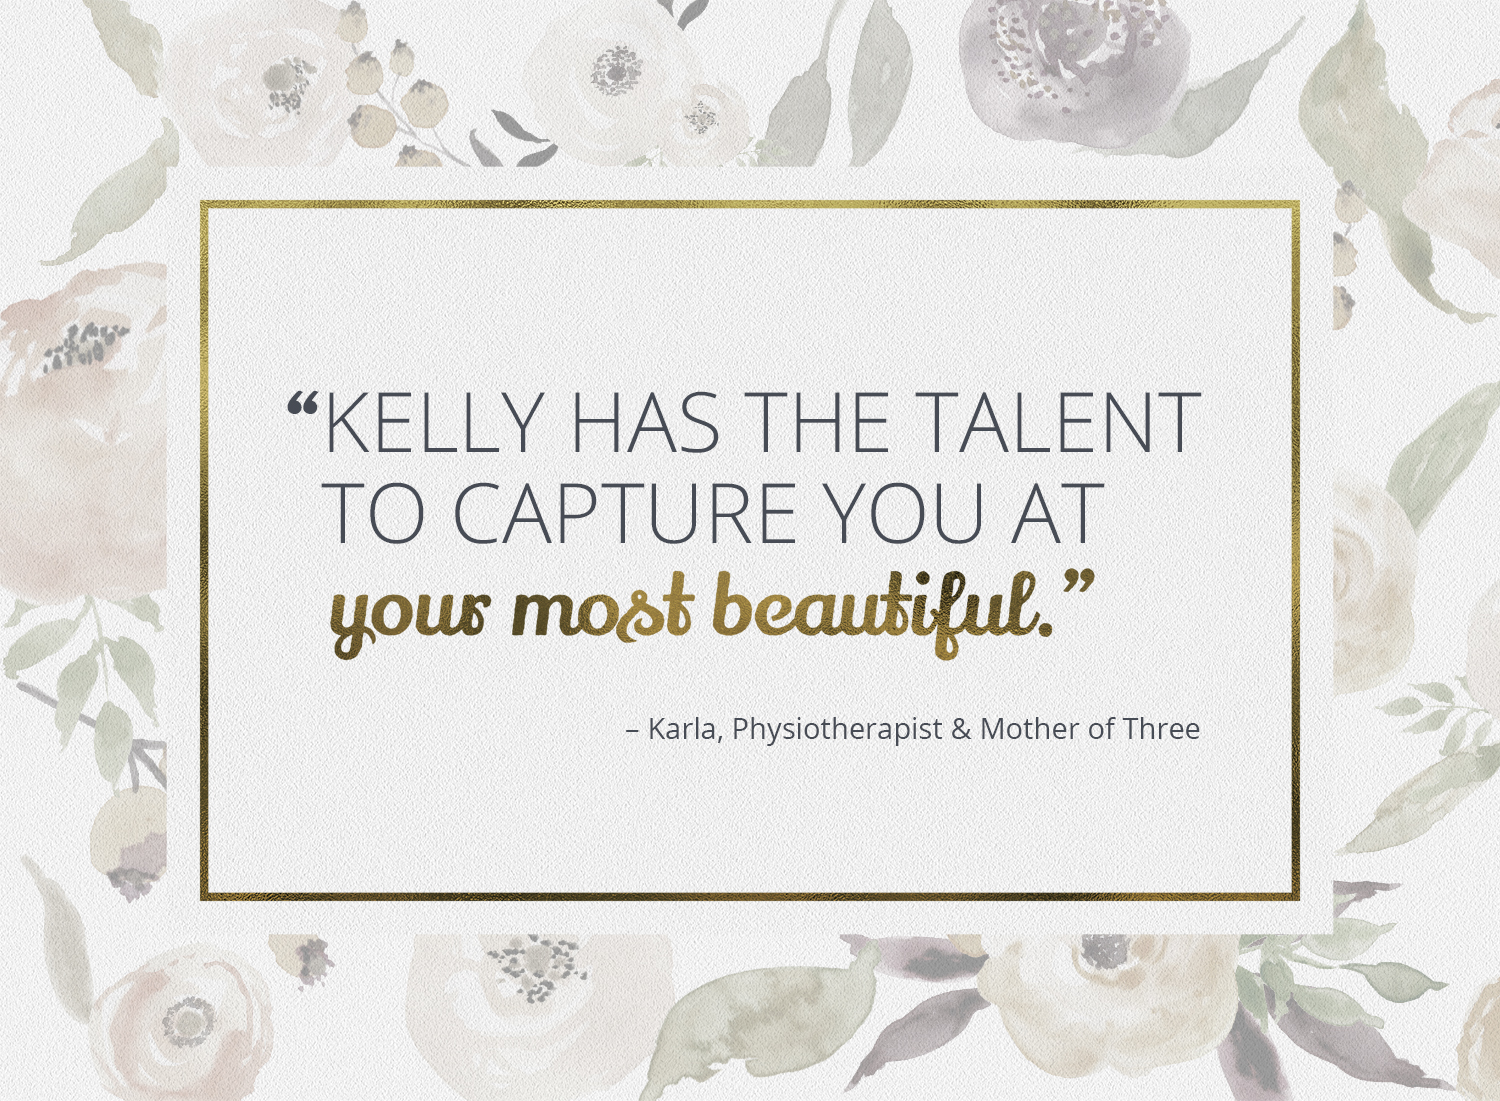 Boudoir quote by Karla